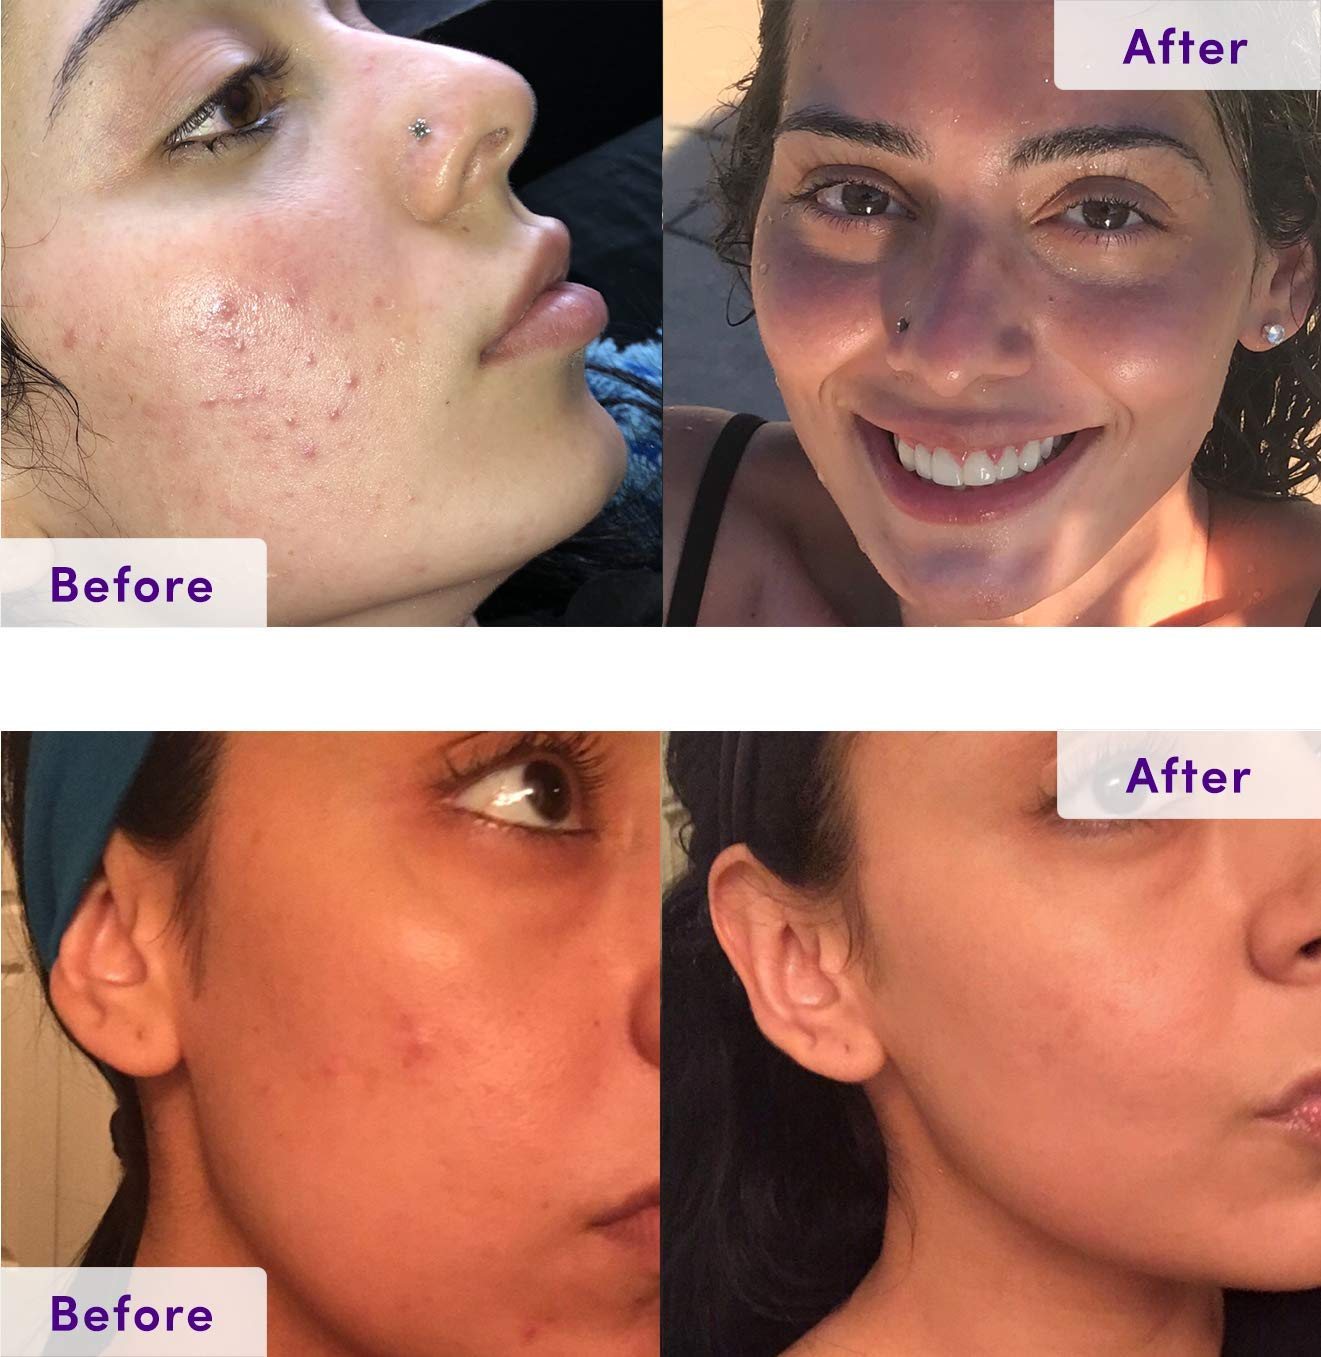 NxN Acne Treatment Kit 4-Step Clear Skin System with Salicylic Acid, Probiotics, Sulfer & Natural Retinols, Control Blemishes & Breakouts, Face Care Solution Set for All Skin Types Including Sensitive: Beauty